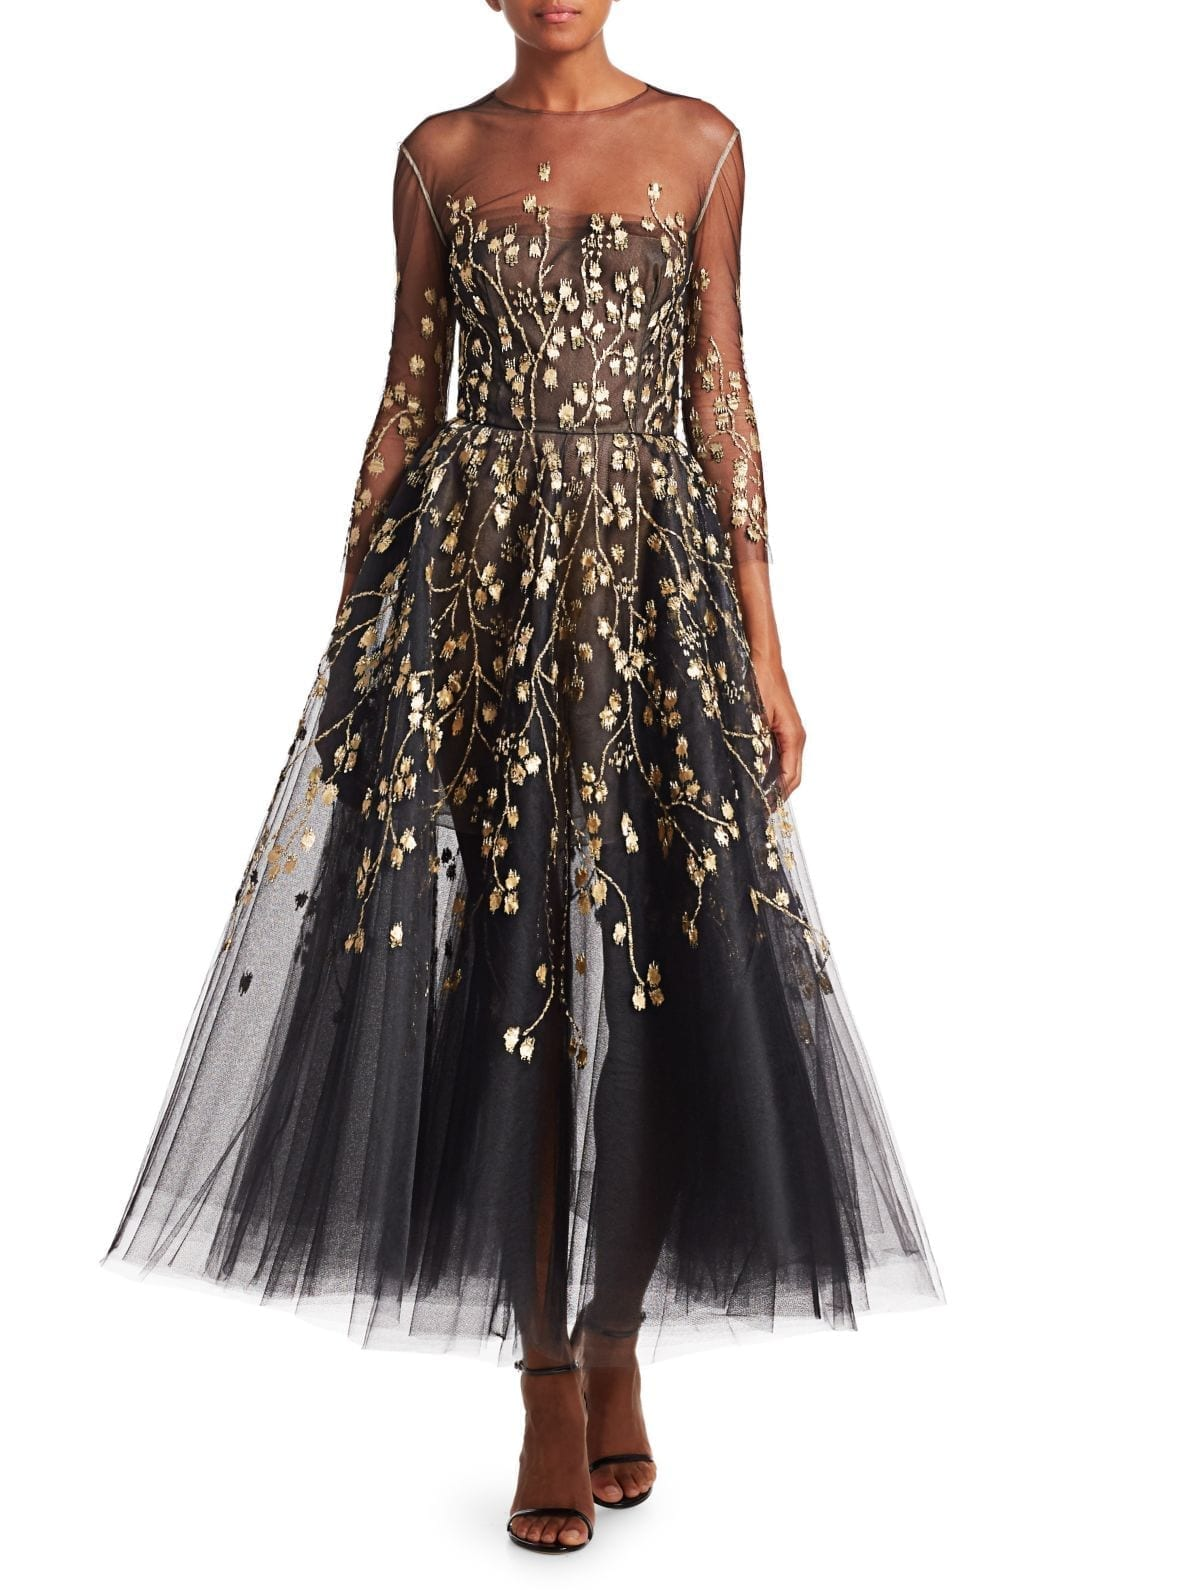 OSCAR DE LA RENTA Embellished Illusion Fit-&-Flare Cocktail Black Dress